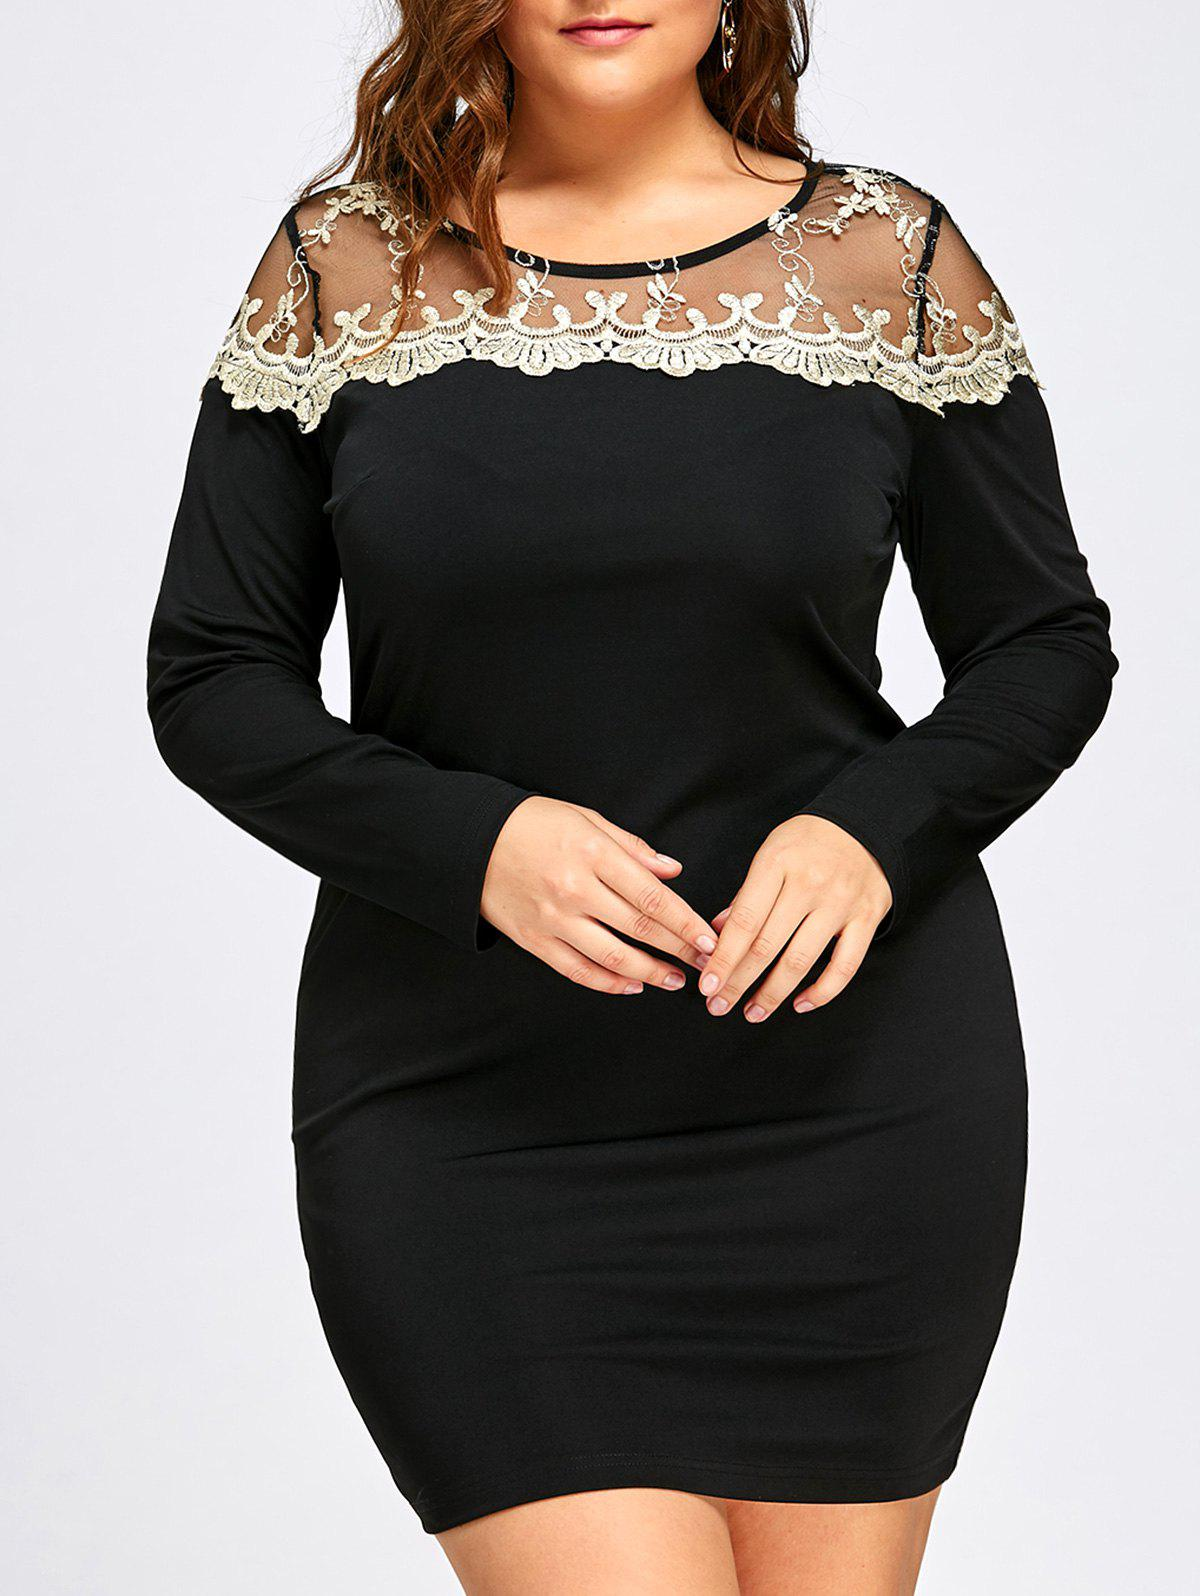 Plus Size Mesh Panel Mini Bodycon DressWOMEN<br><br>Size: 2XL; Color: BLACK; Style: Casual; Material: Polyester,Spandex; Silhouette: Bodycon; Dresses Length: Mini; Neckline: Round Collar; Sleeve Length: Long Sleeves; Pattern Type: Floral; With Belt: No; Season: Fall; Weight: 0.3500kg; Package Contents: 1 x Dress;